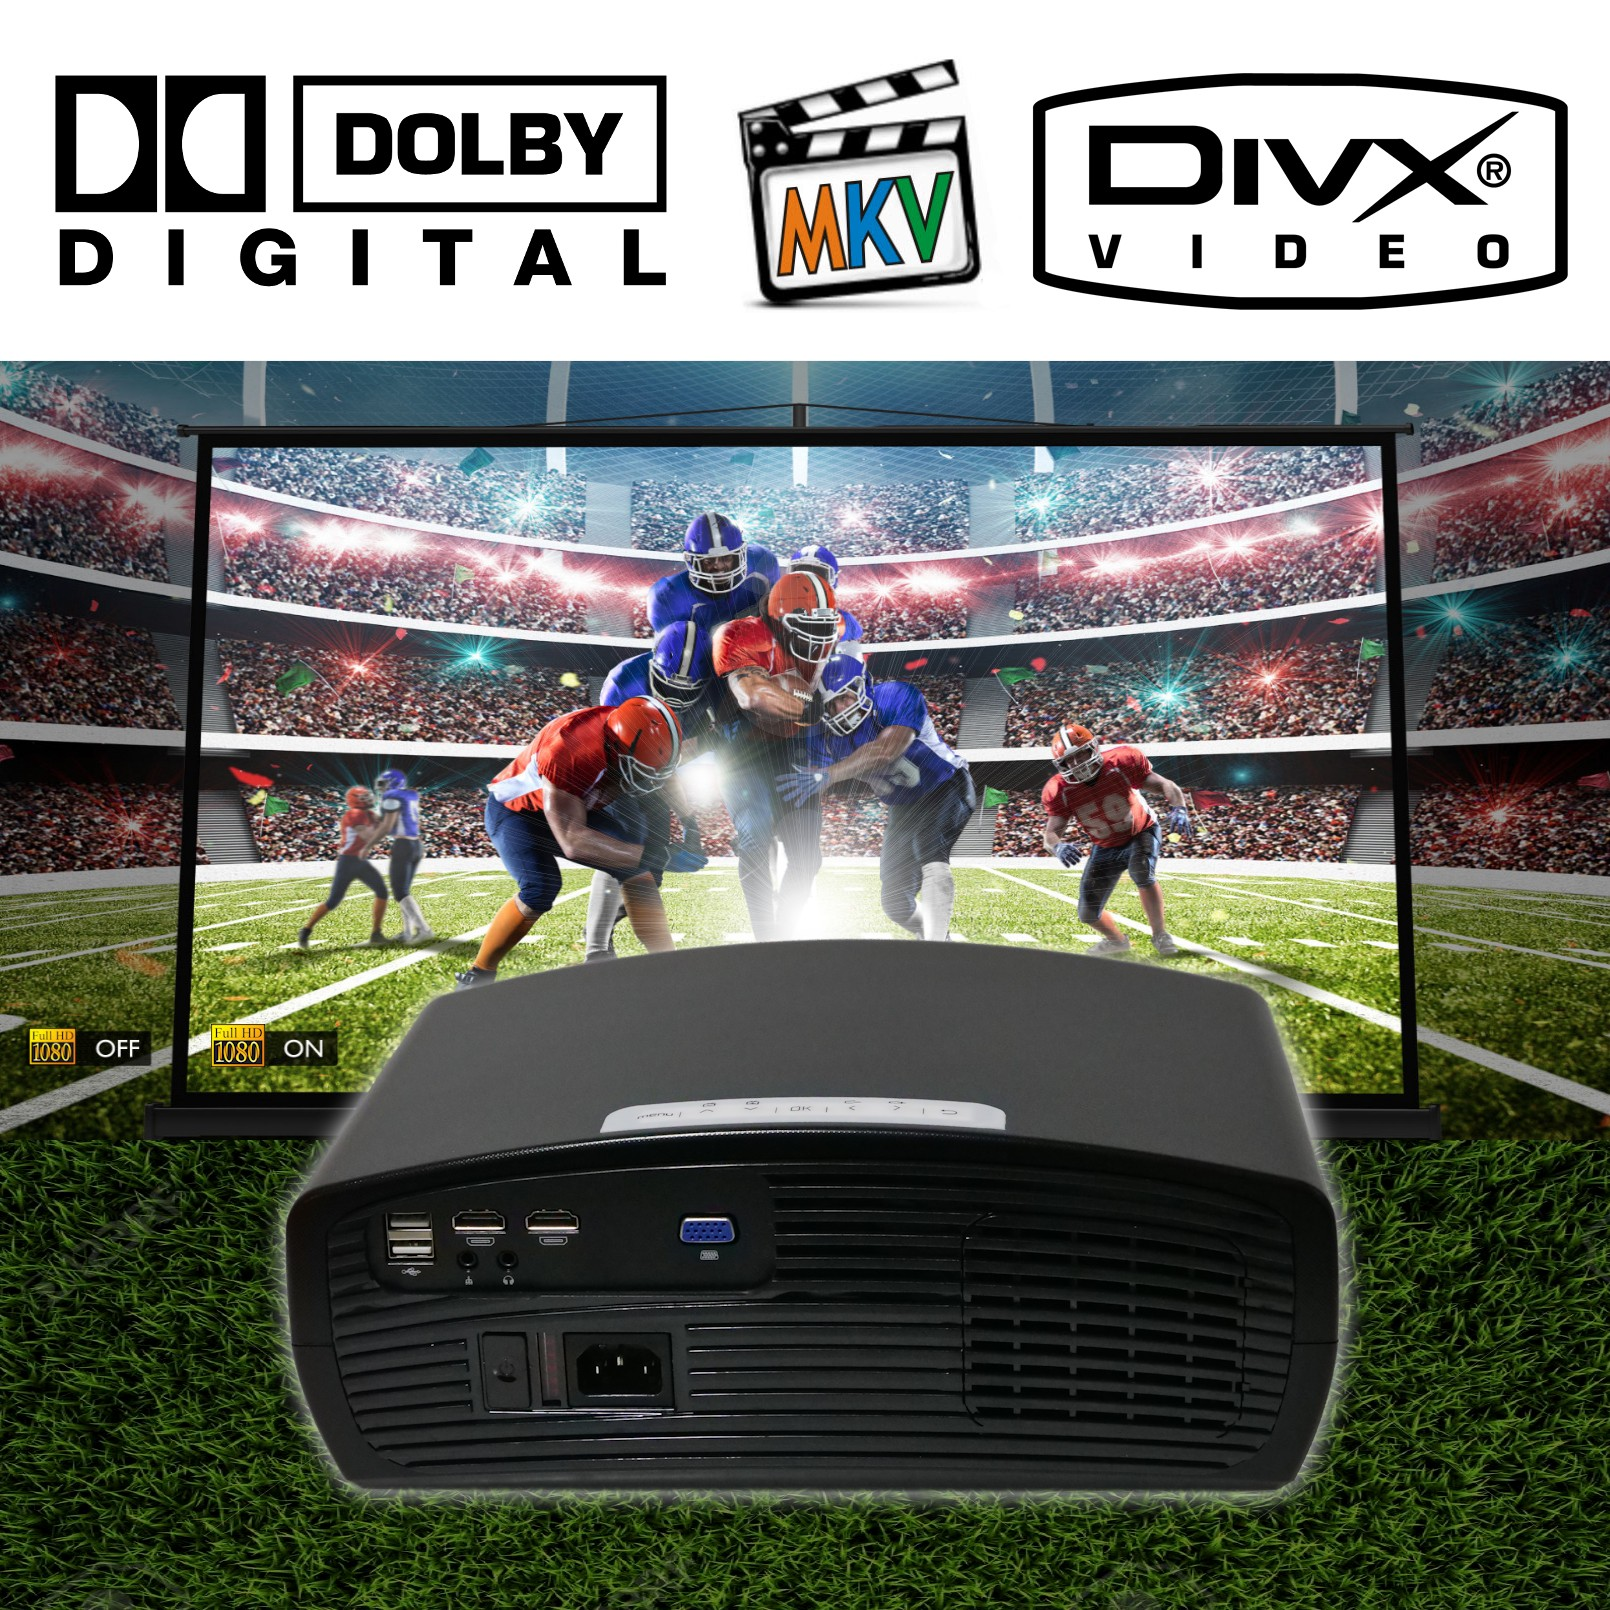 Luximagen FUHD200 incluye AC3 dolby digital y mkv avi mpeg bluray